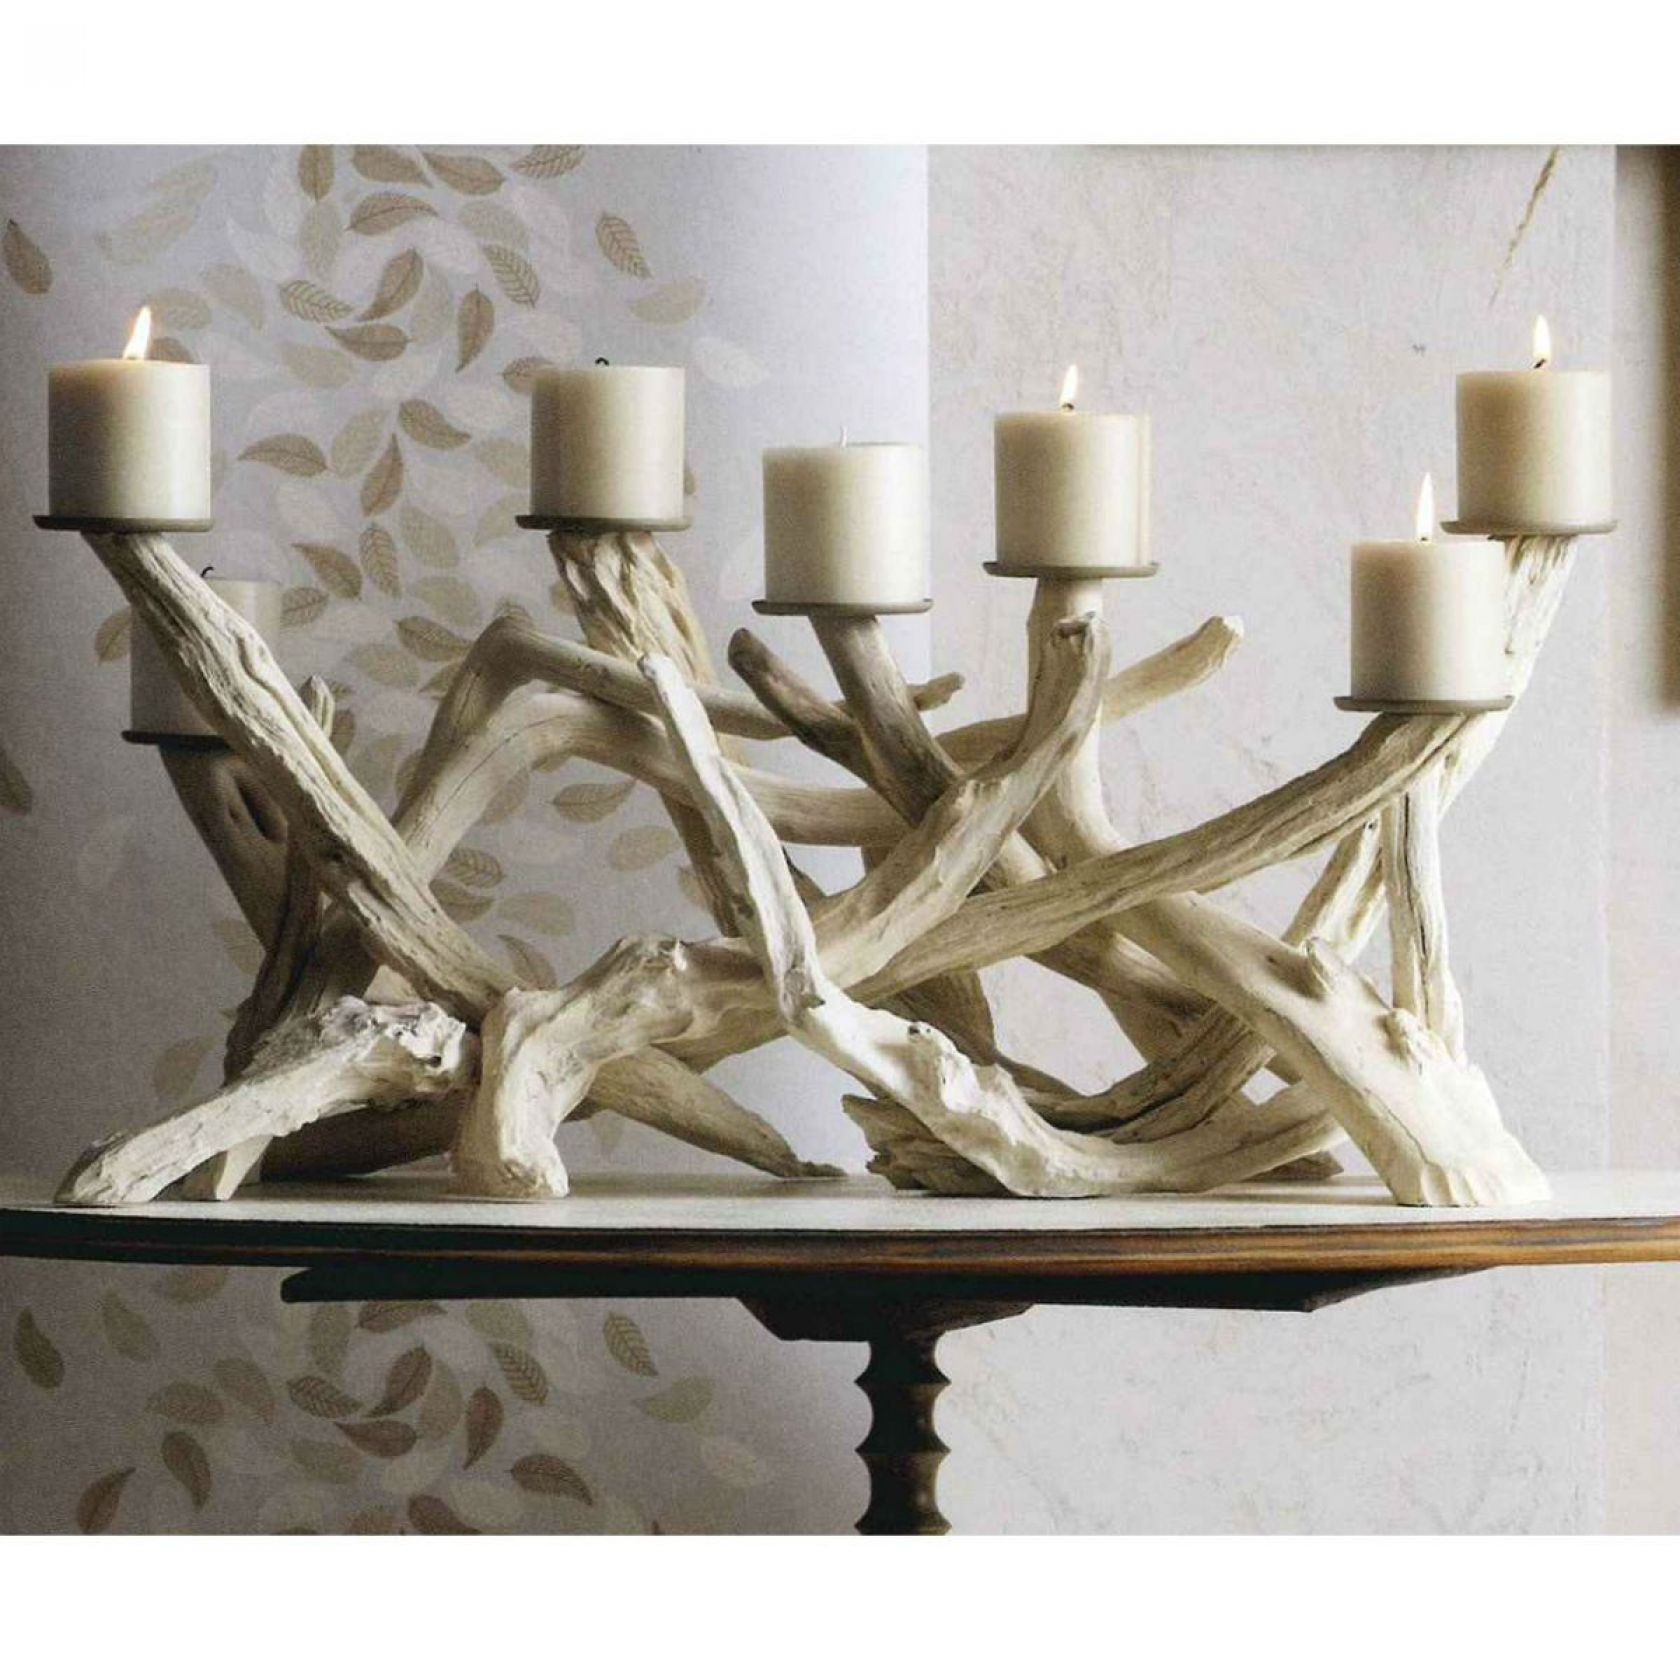 Driftwood Furniture Ideas Royals Courage Driftwood Furniture